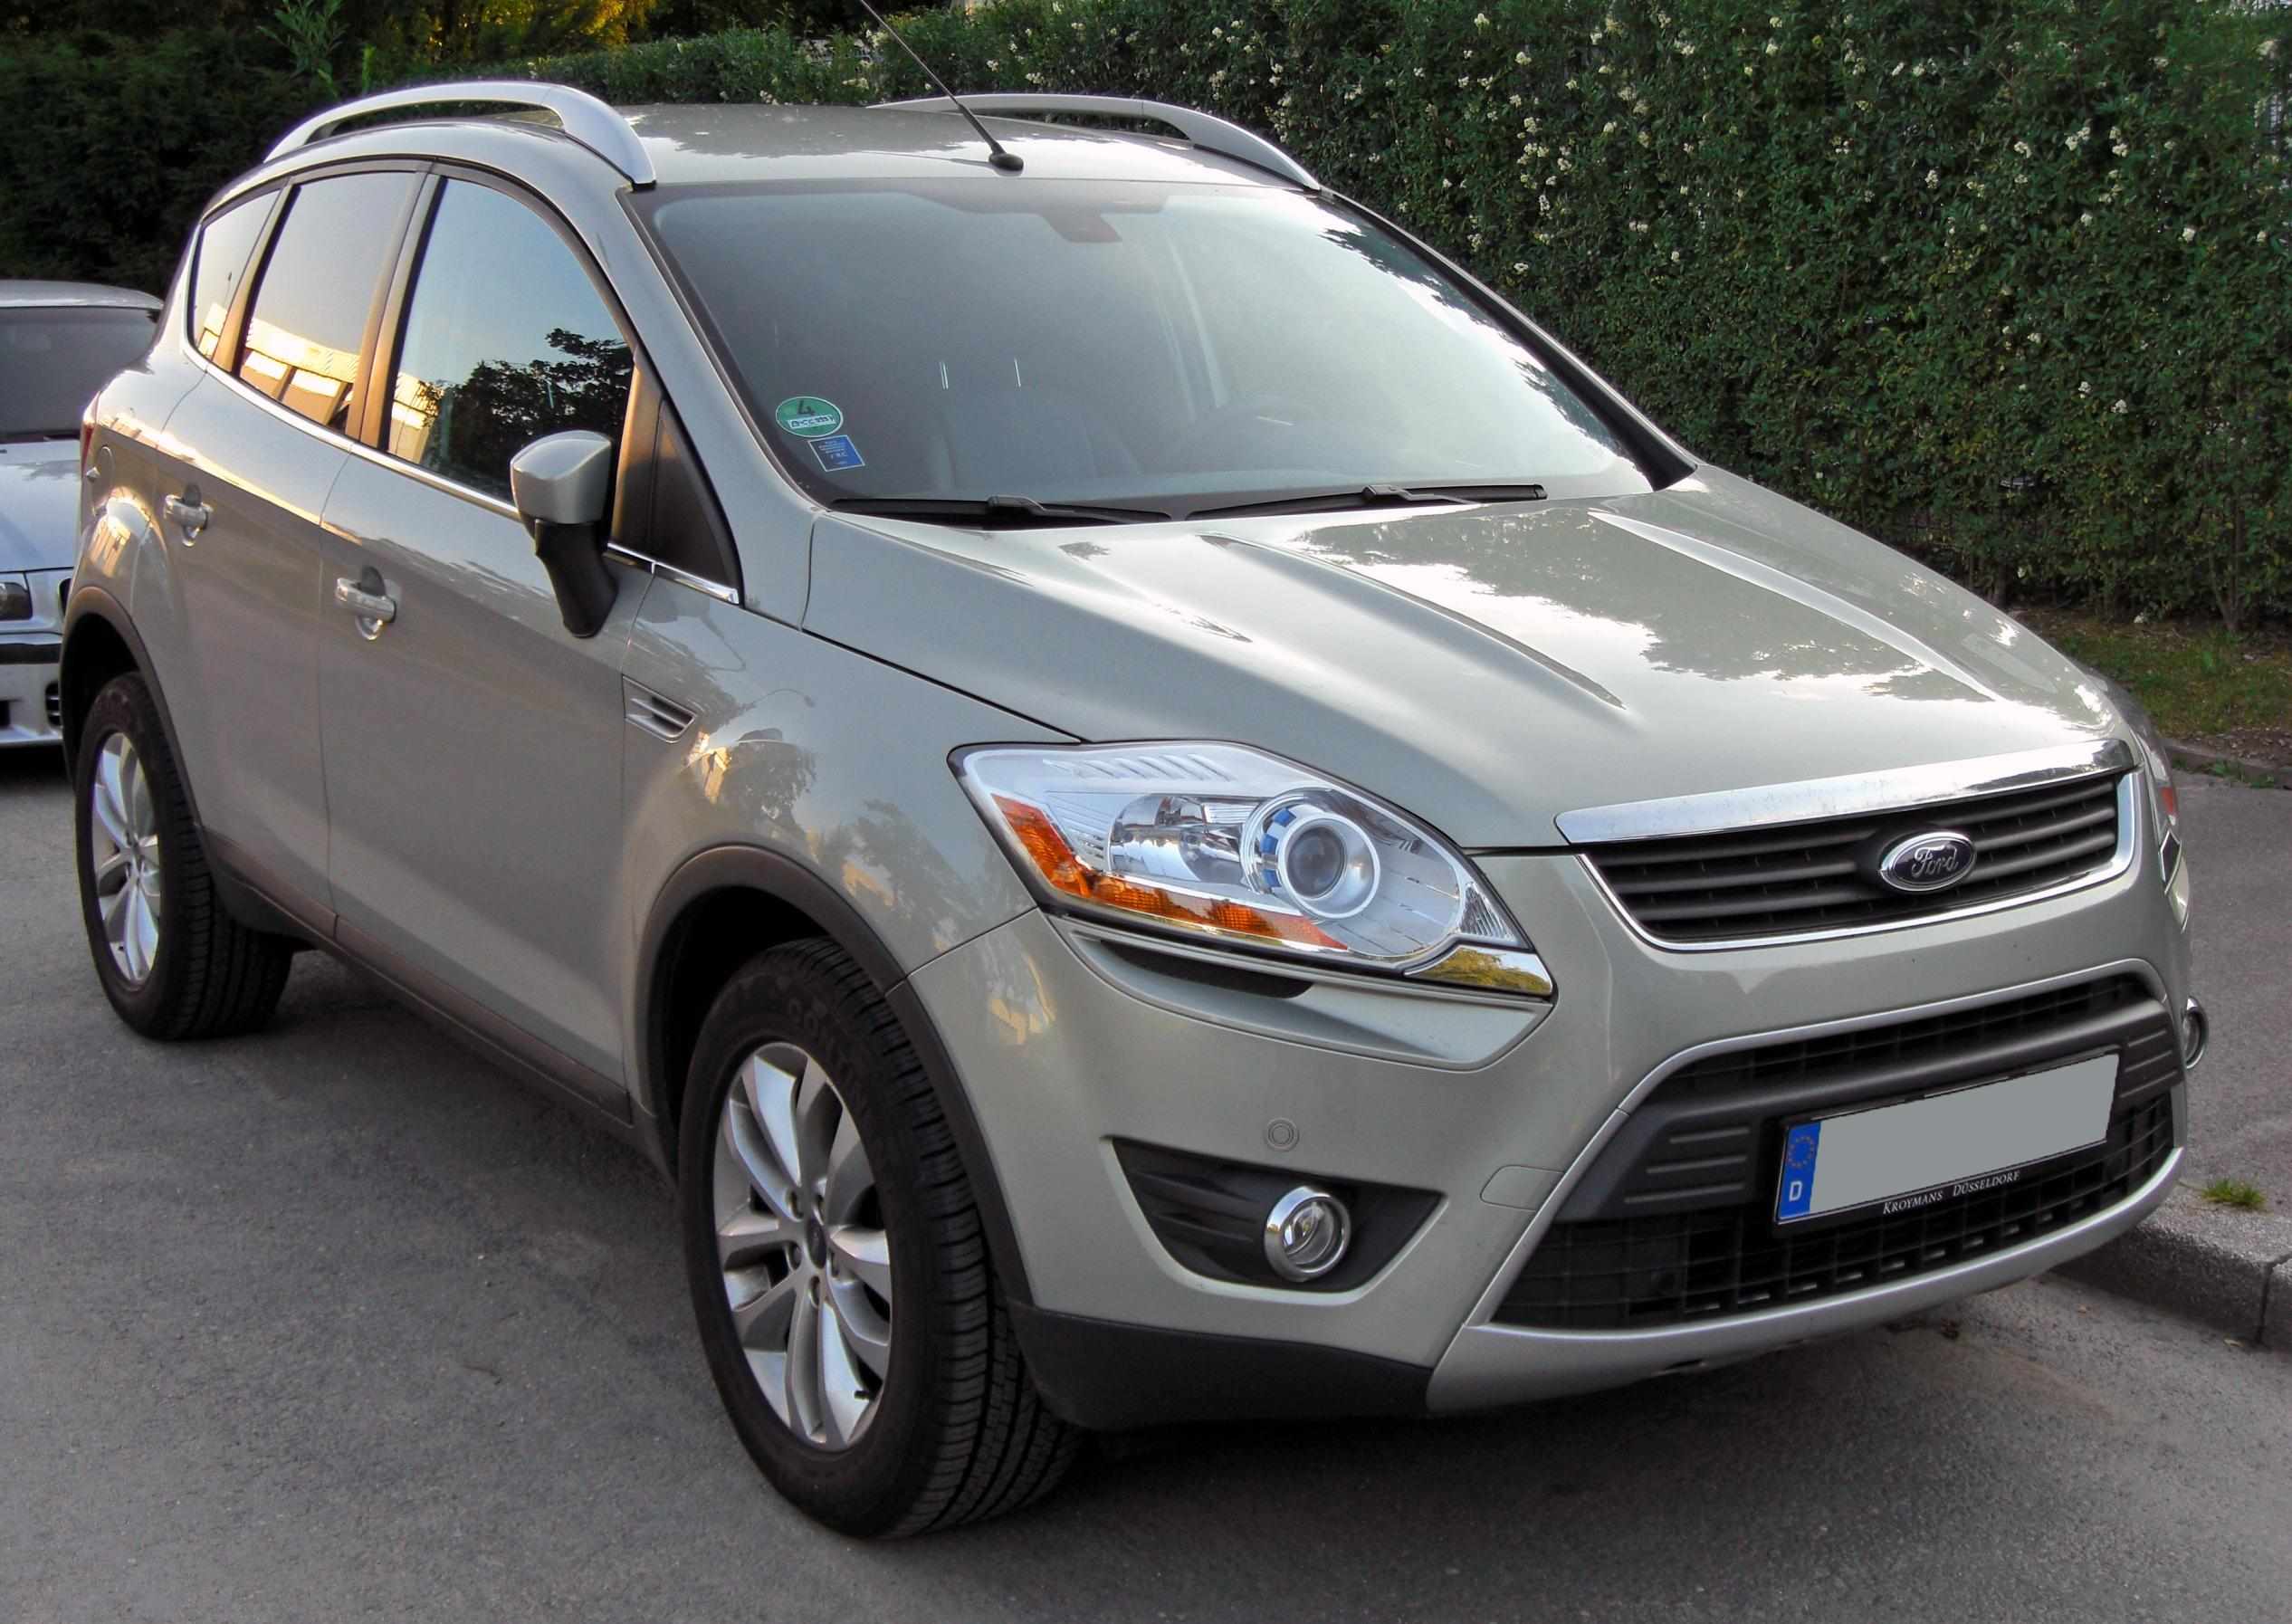 Kuga Dimensions >> File:Ford Kuga 20090612 front.JPG - Wikimedia Commons